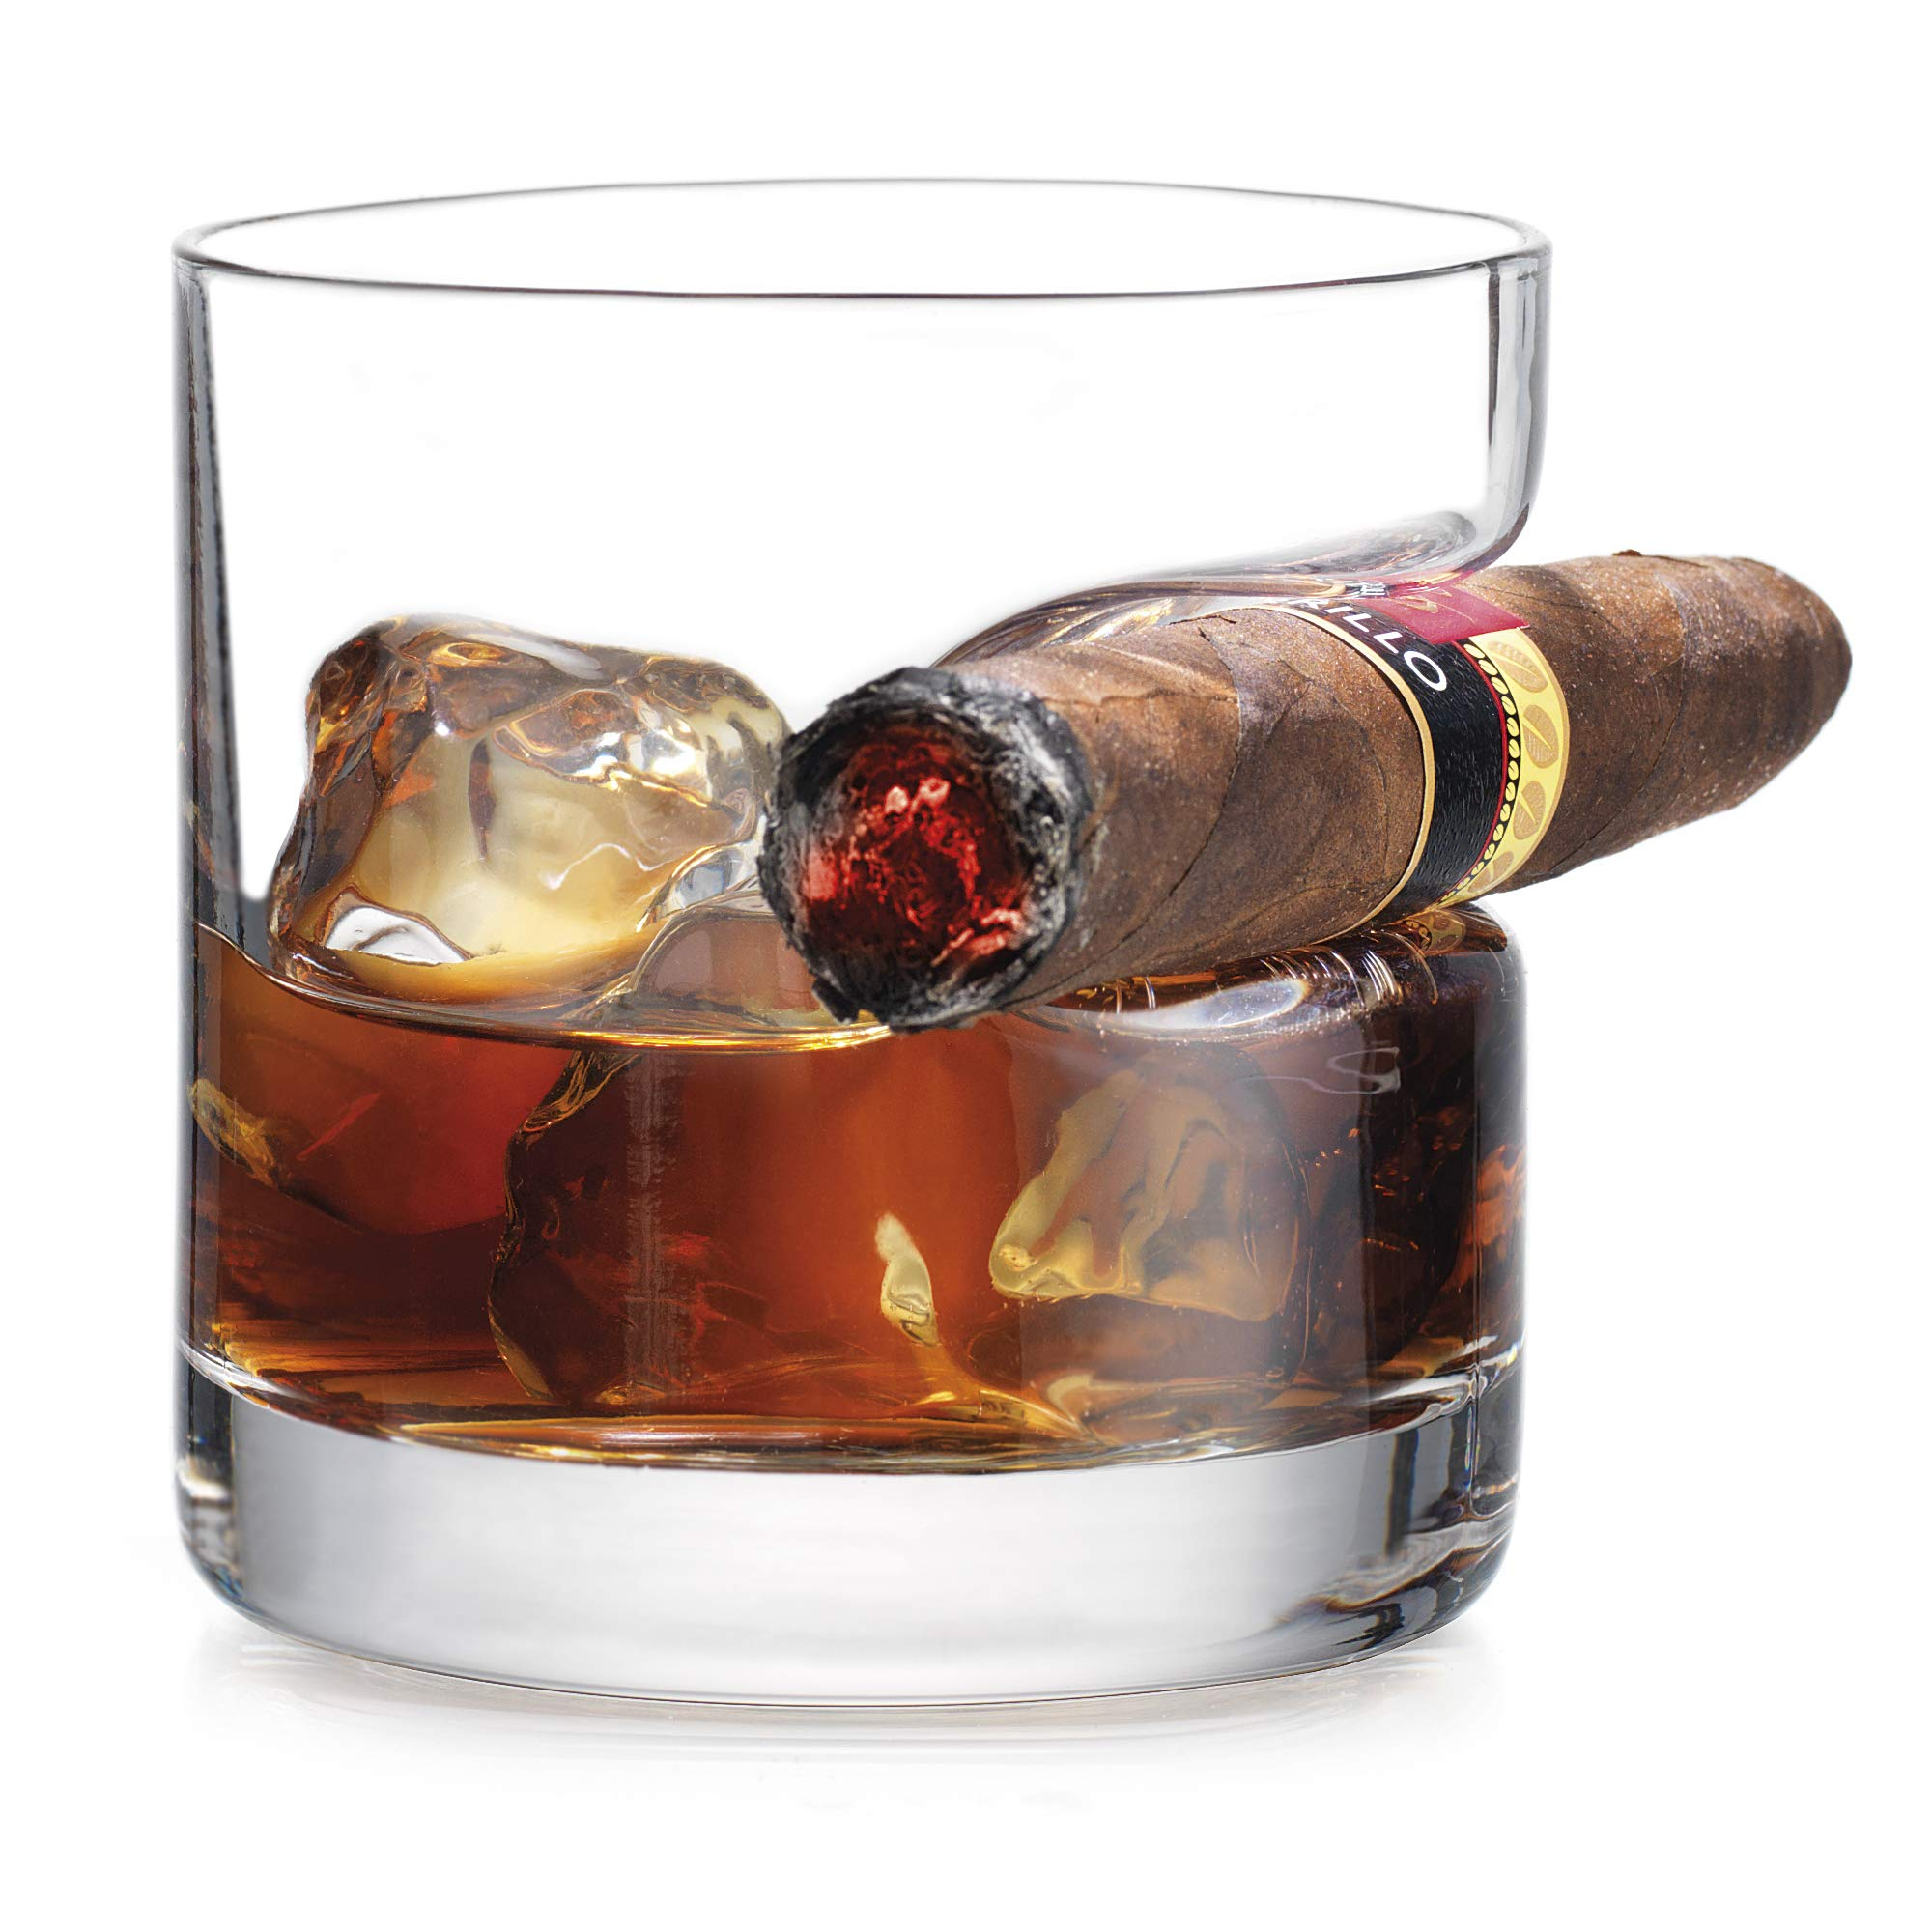 Godinger Cigar Whiskey Glass – Old Fashioned Whiskey Glass With Indented Cigar Rest